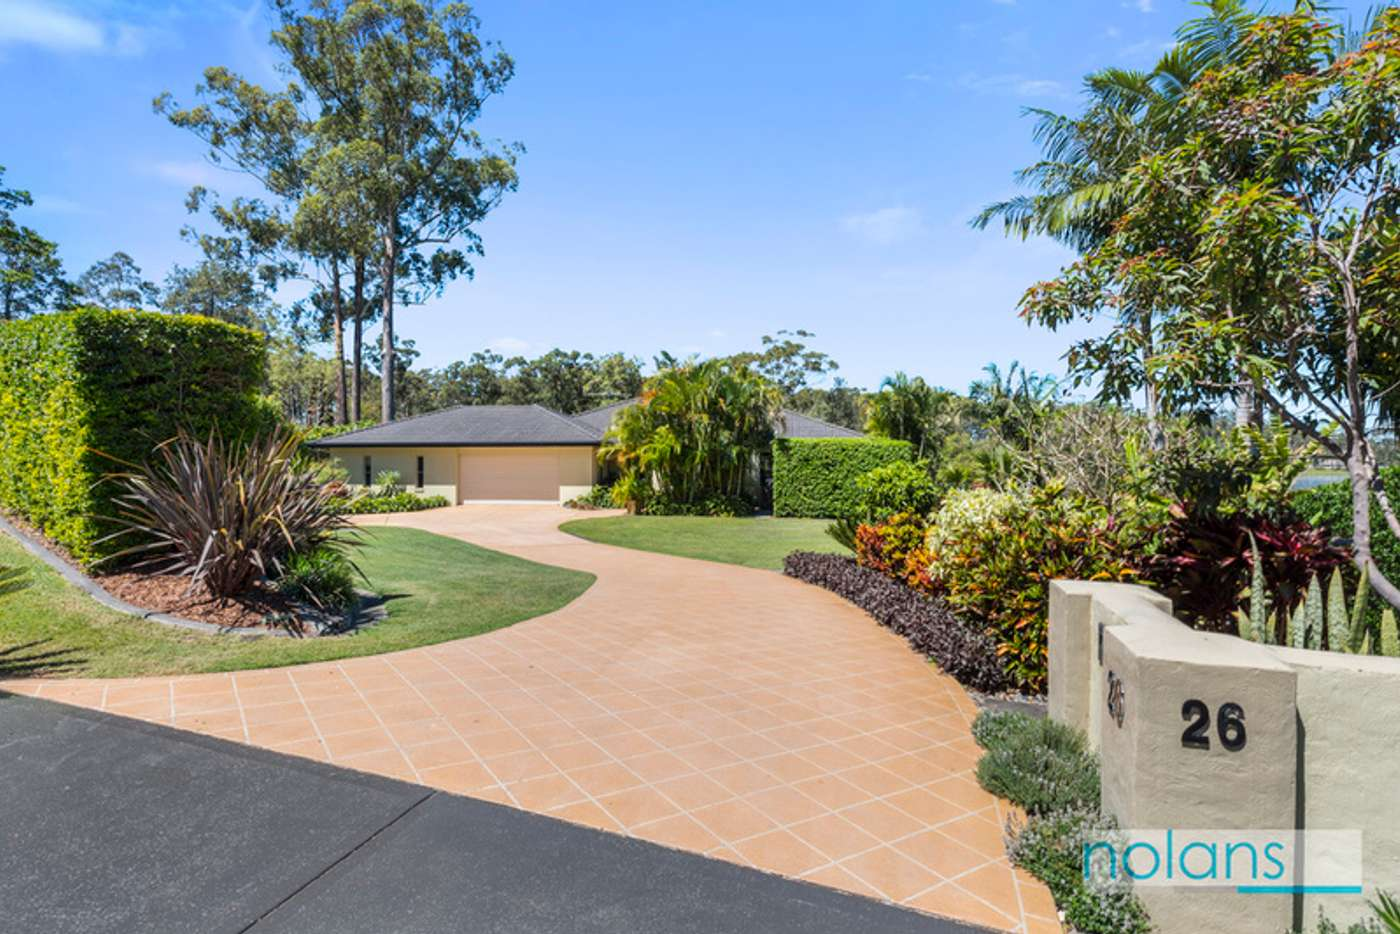 Fifth view of Homely house listing, 26 Lake Russell Drive, Emerald Beach NSW 2456